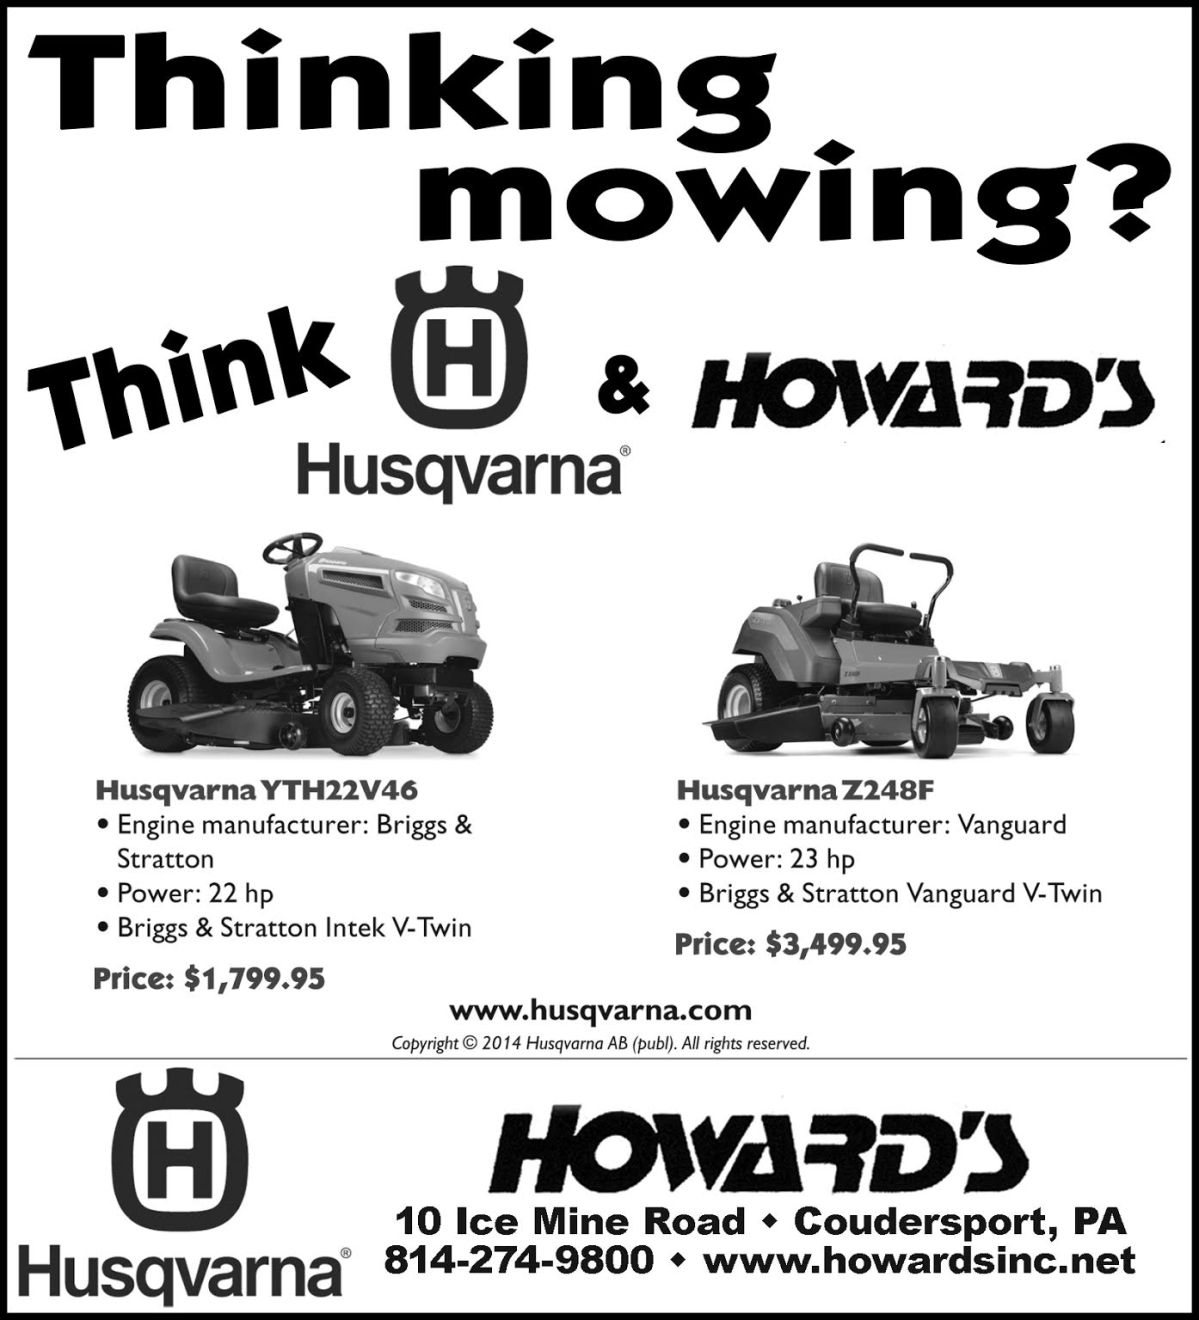 Howard's, Inc. Husqvarna